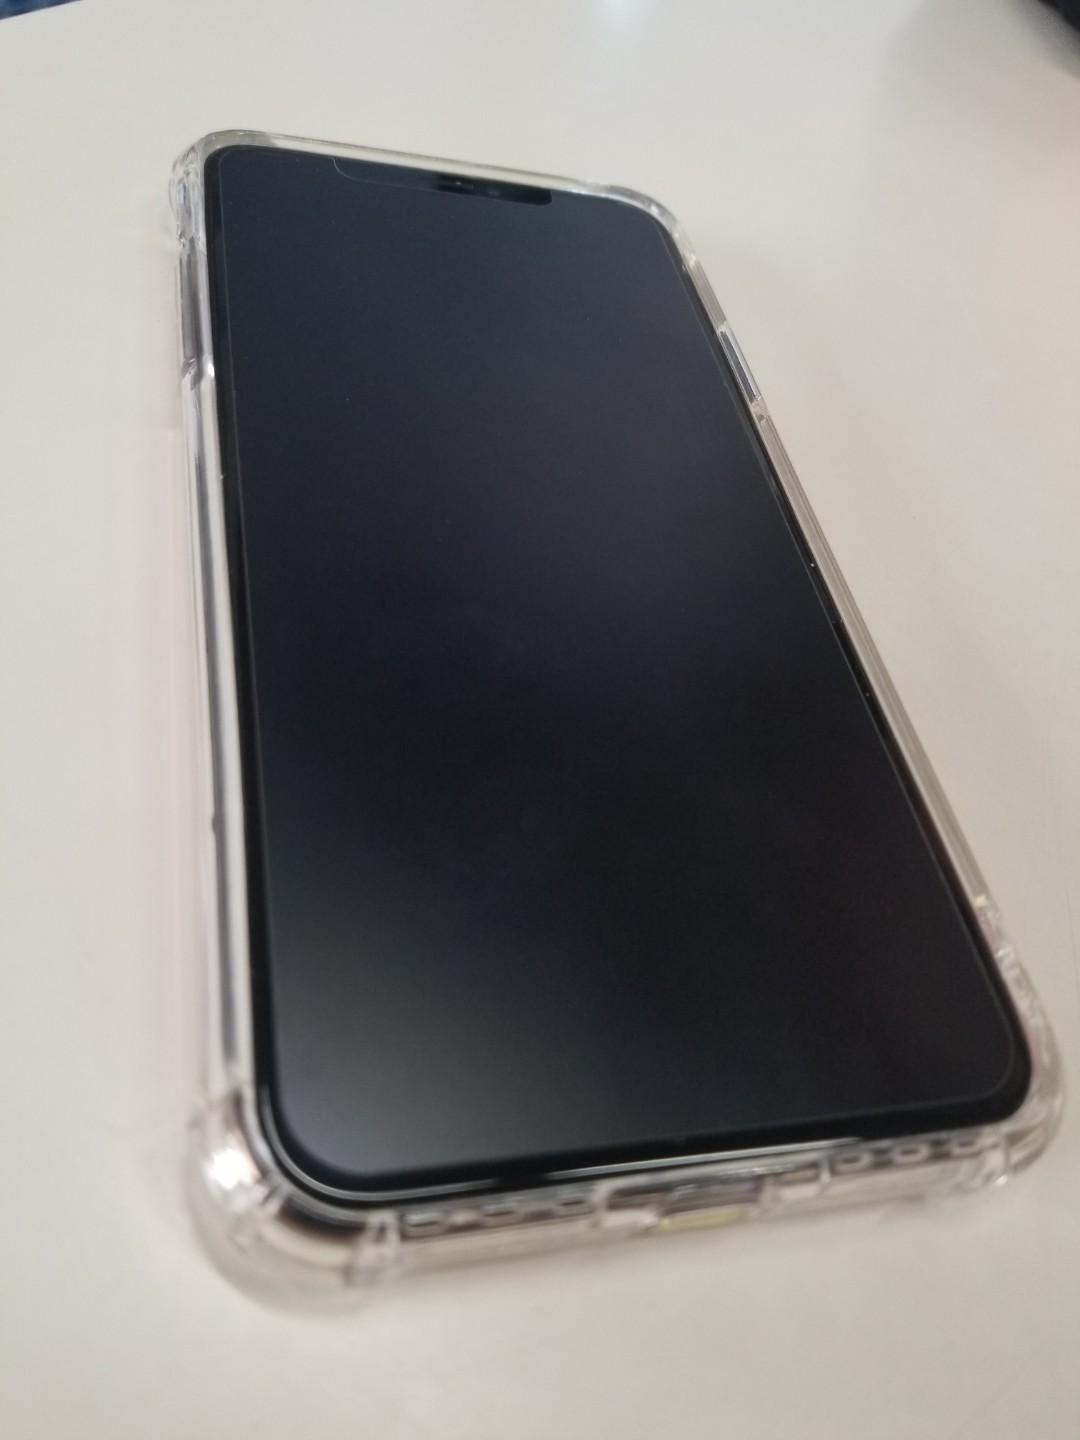 Apple iPhone Xs Max 64gb iOS mobile phone cellphone cellphone #出清2019